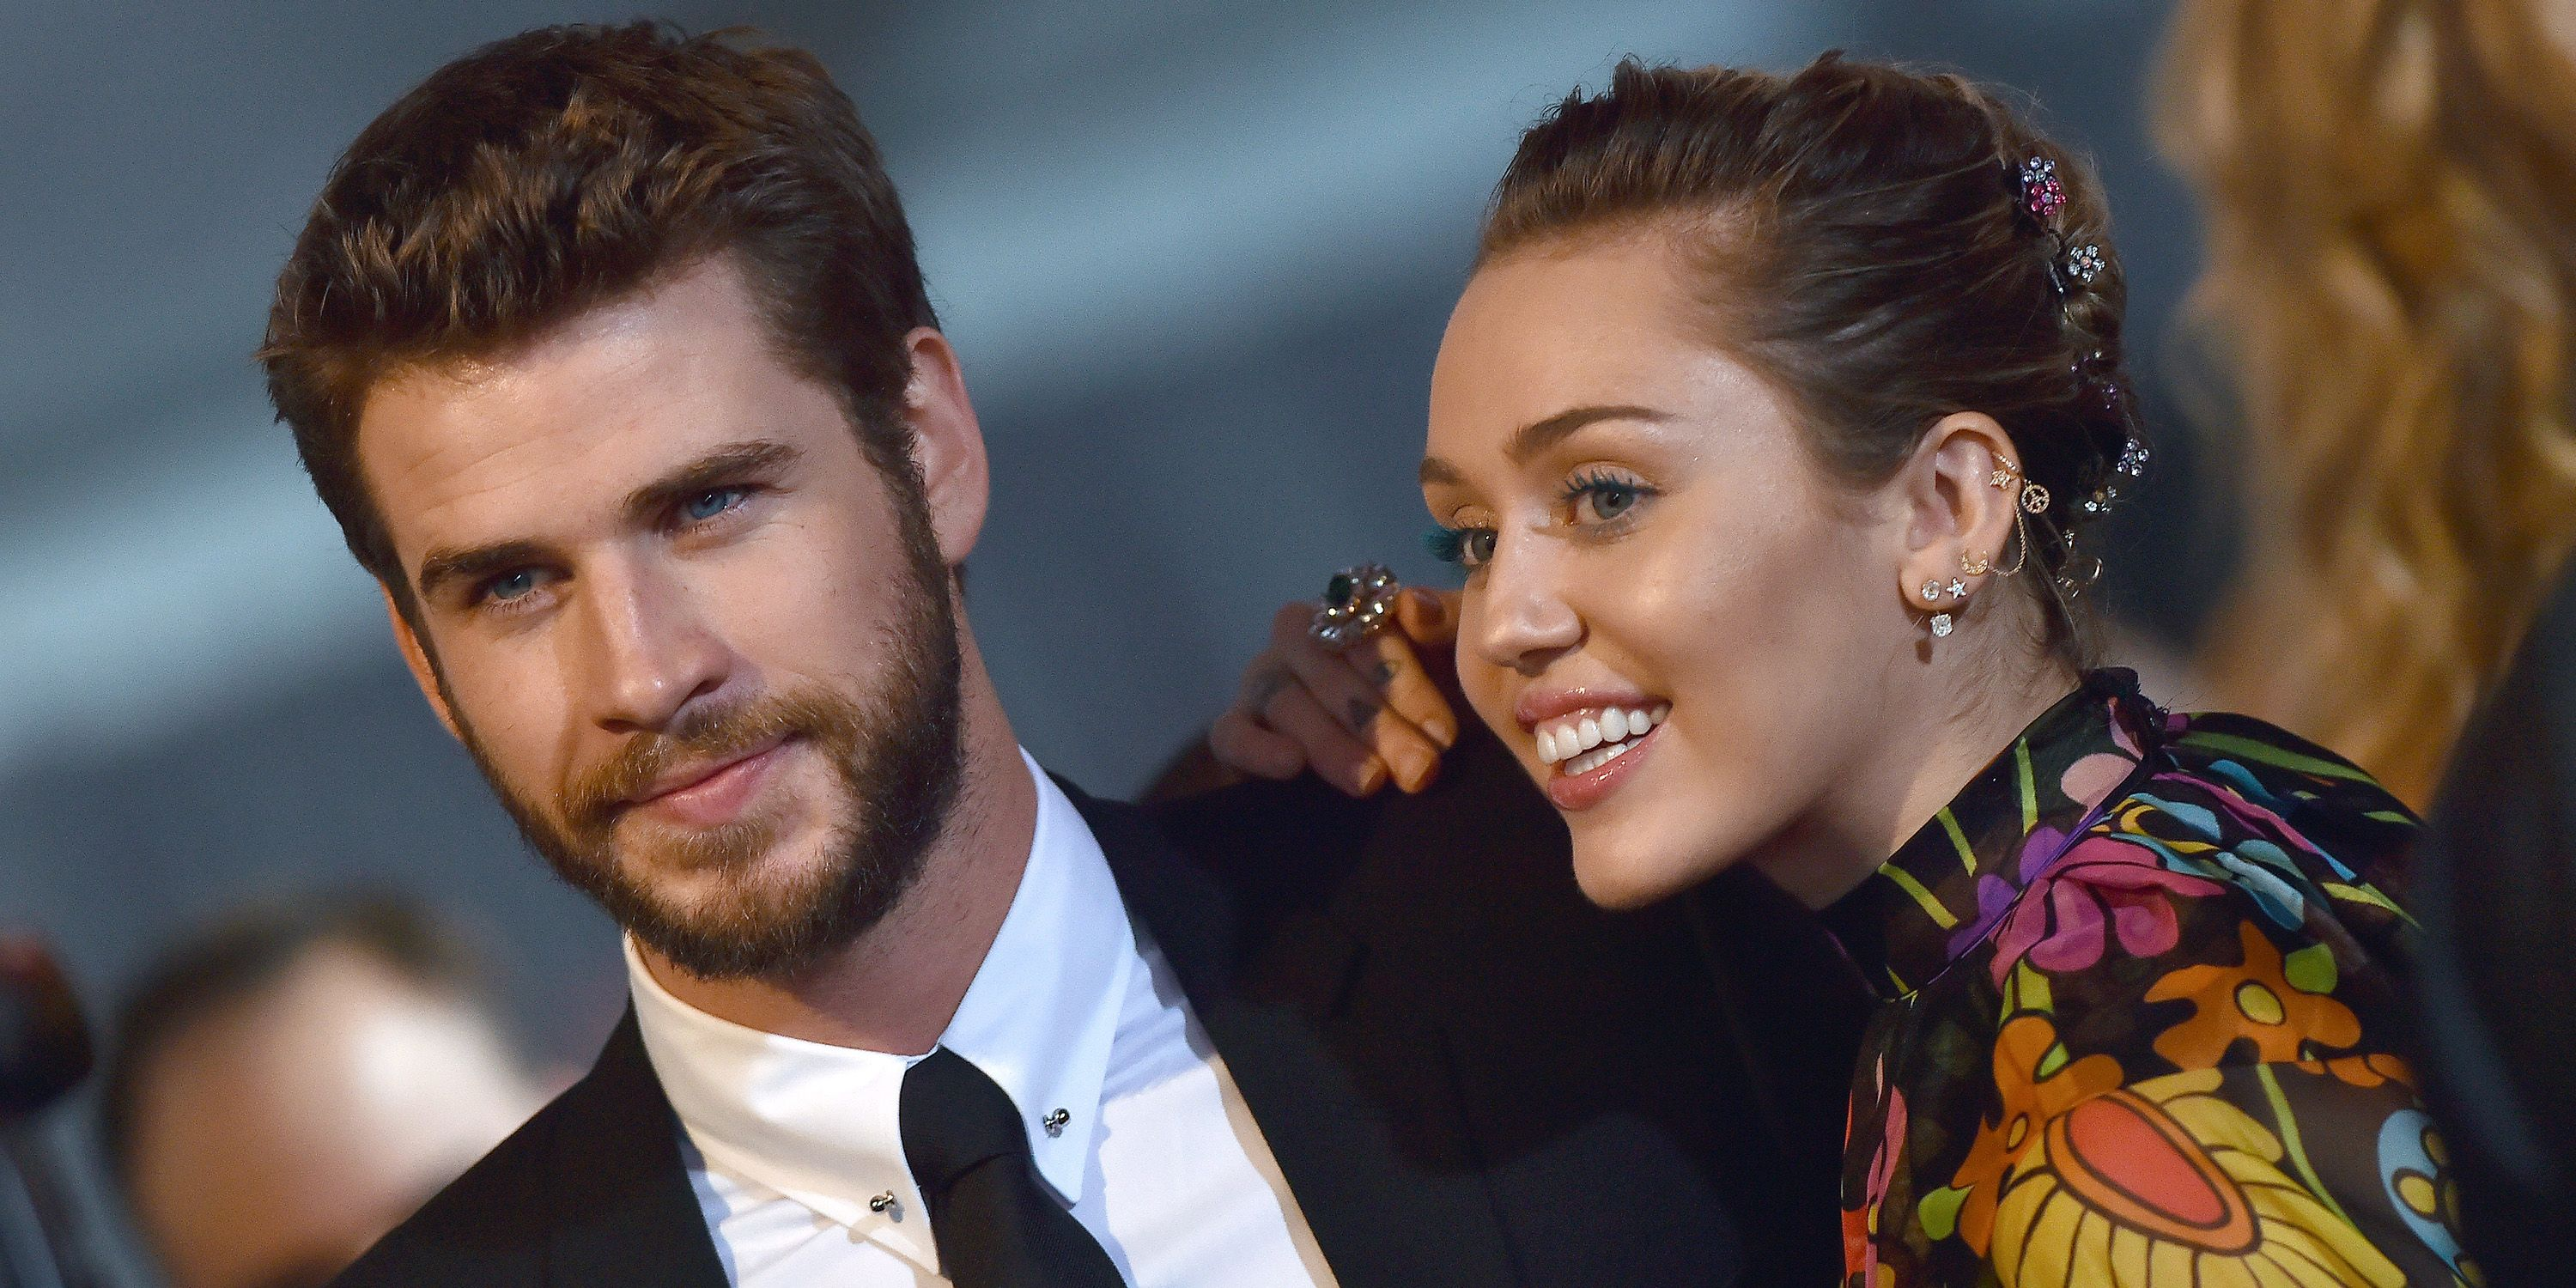 Miley engaged